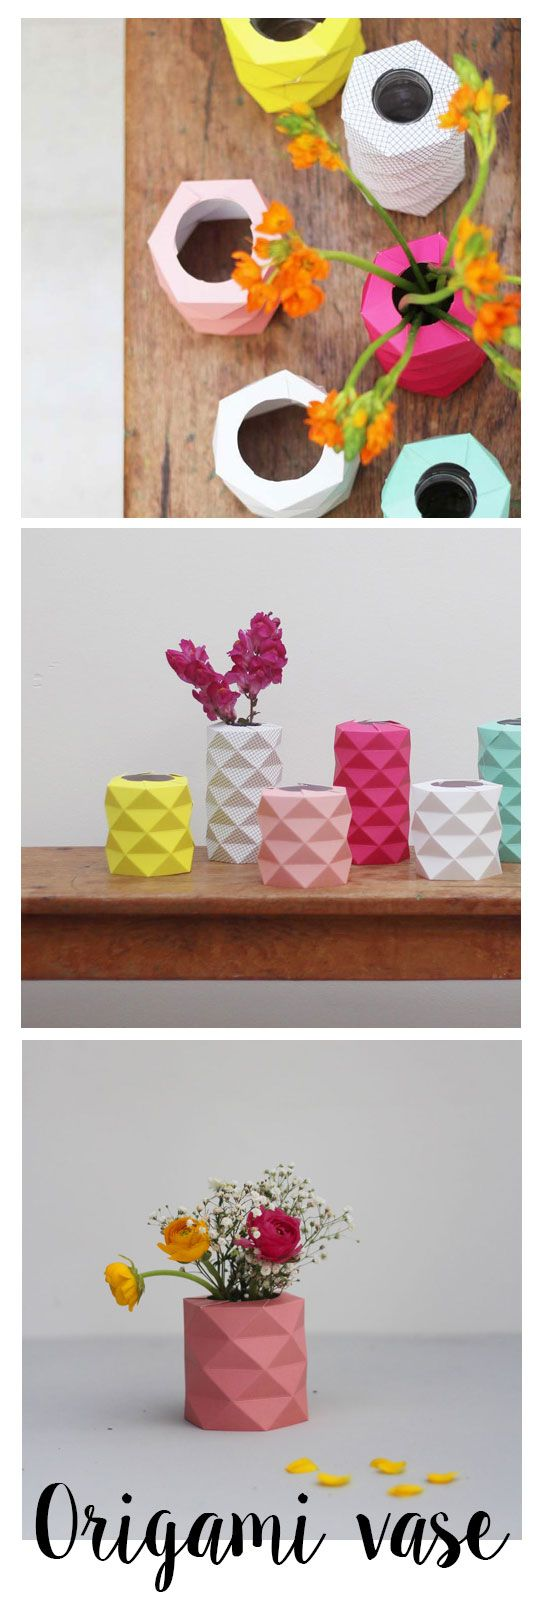 Ink origami vase this beautiful pink origami vase is made of high ink origami vase this beautiful pink origami vase is made of high quality laminated paper grams it can cover any simple bottle or a jar in the right size floridaeventfo Images